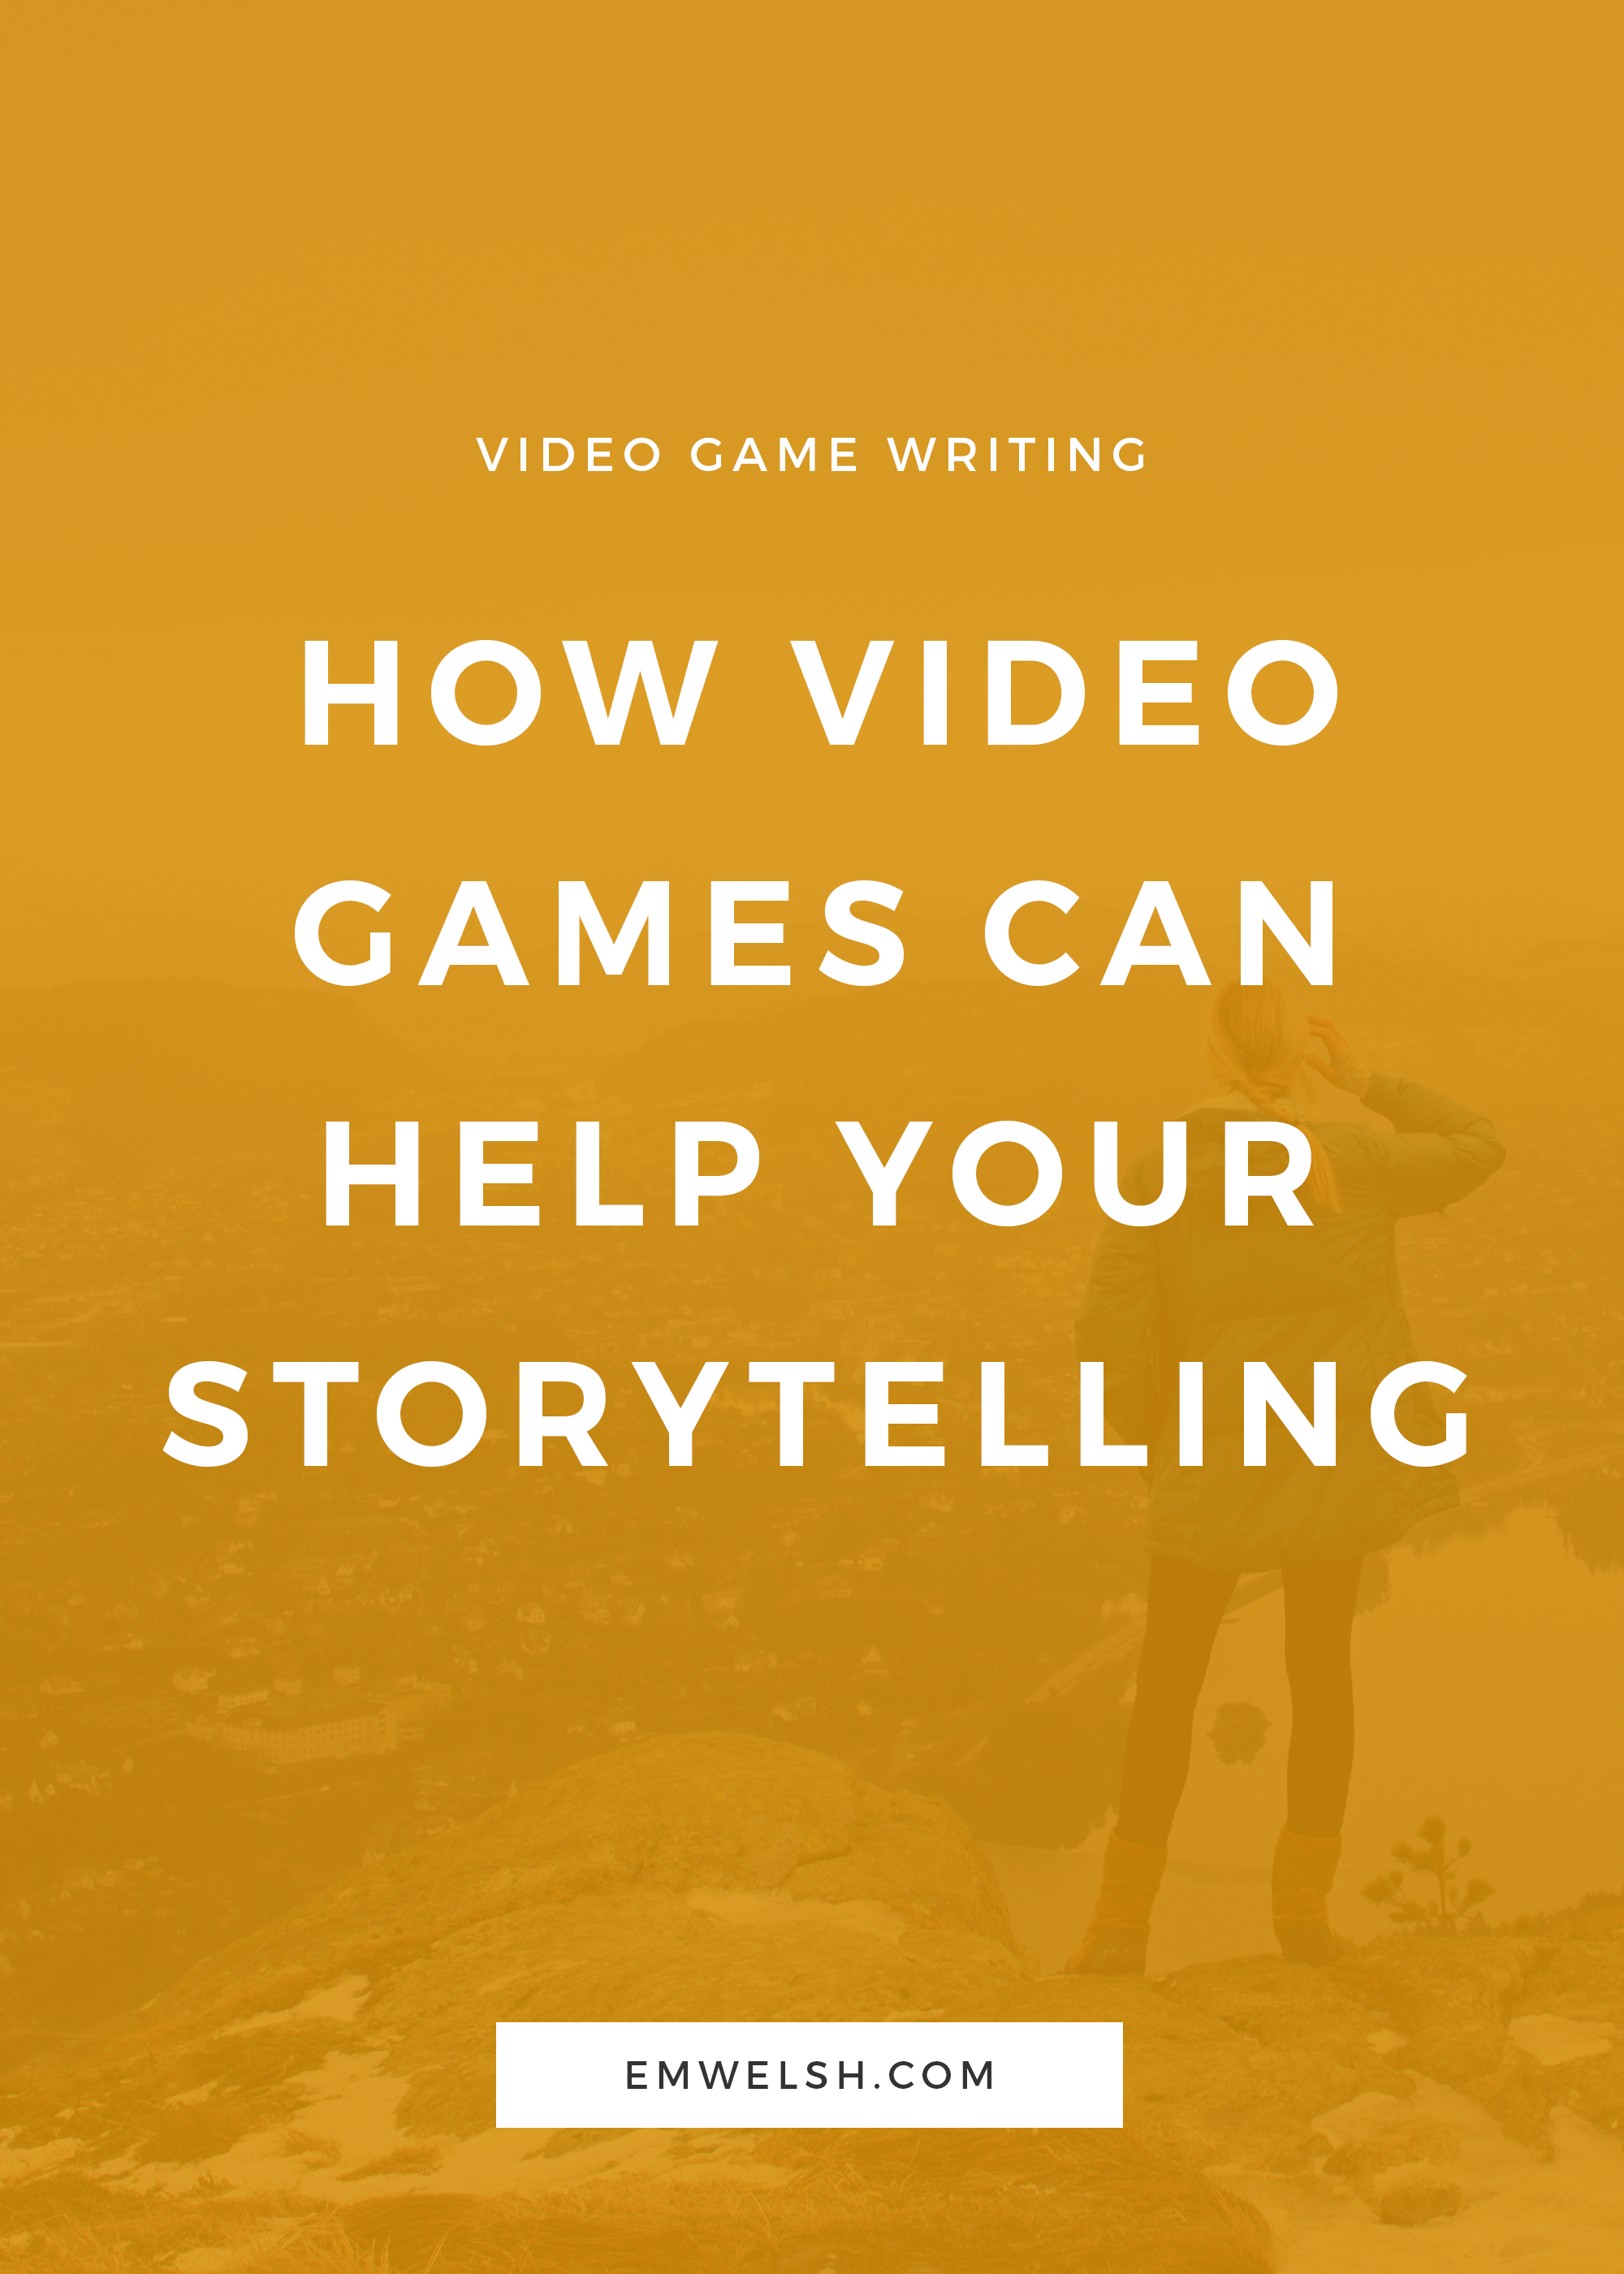 Video Games and Storytelling - REBRAND